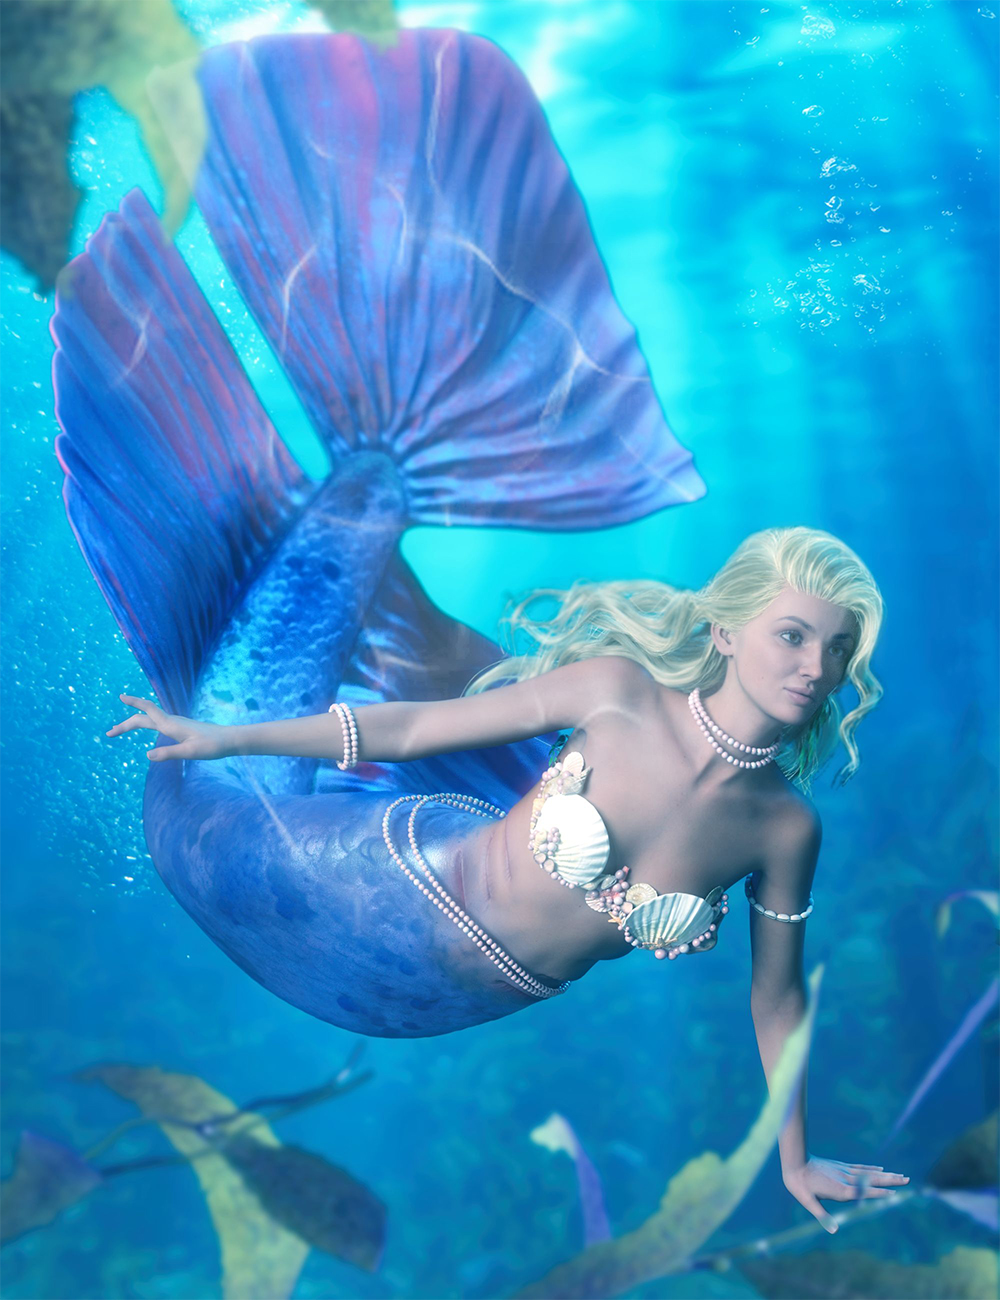 BW Sea Pearl Mermaid Outfit For Genesis 8 and Genesis 8.1 Females by: Beautyworks, 3D Models by Daz 3D